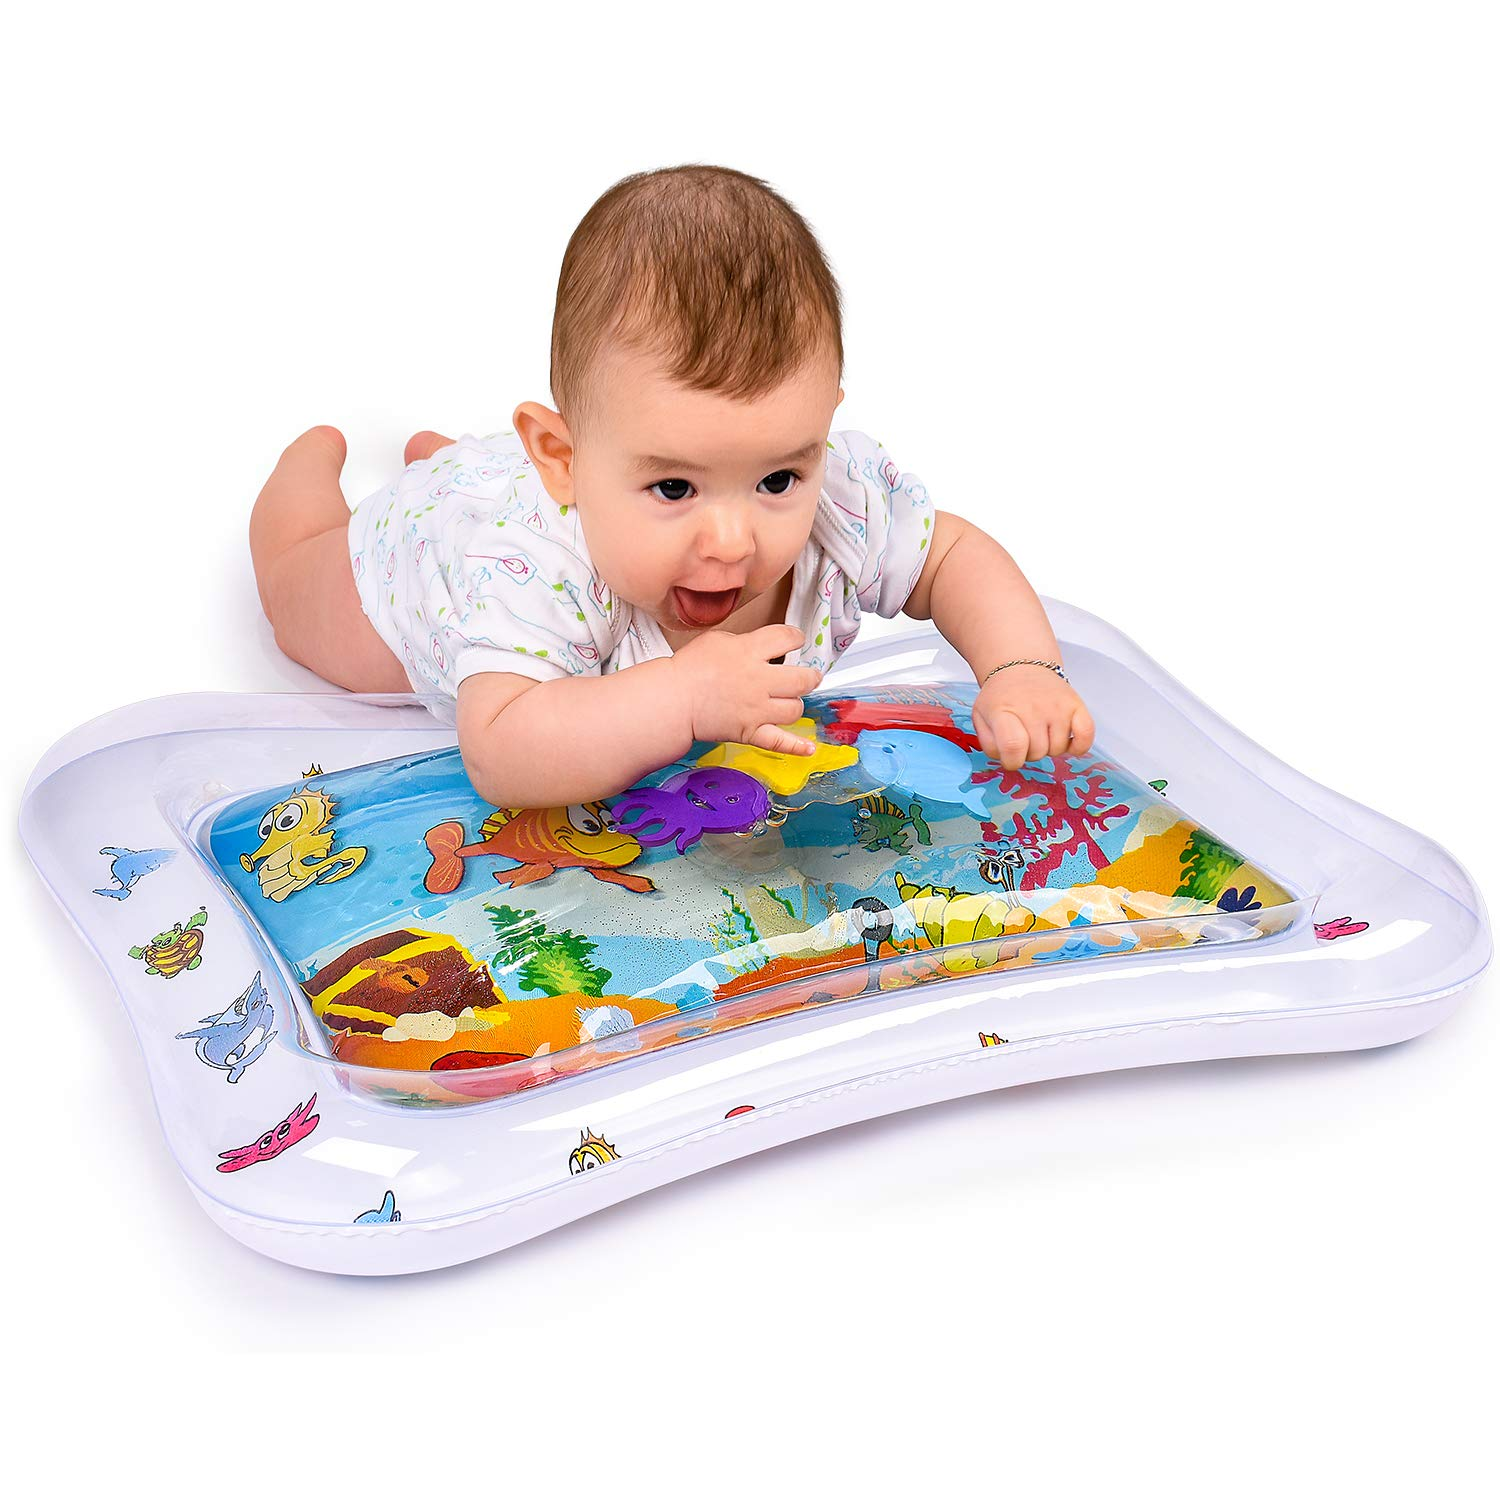 Adorable Tummy Time Mat For Infants | Colorful & Fun Inflatable Baby Water Mat | Leakproof PVC Water Filled Playmat For Newborns | Engaging & Stimulating Vibrant Play Activity Center | Unisex Design Hakol Products